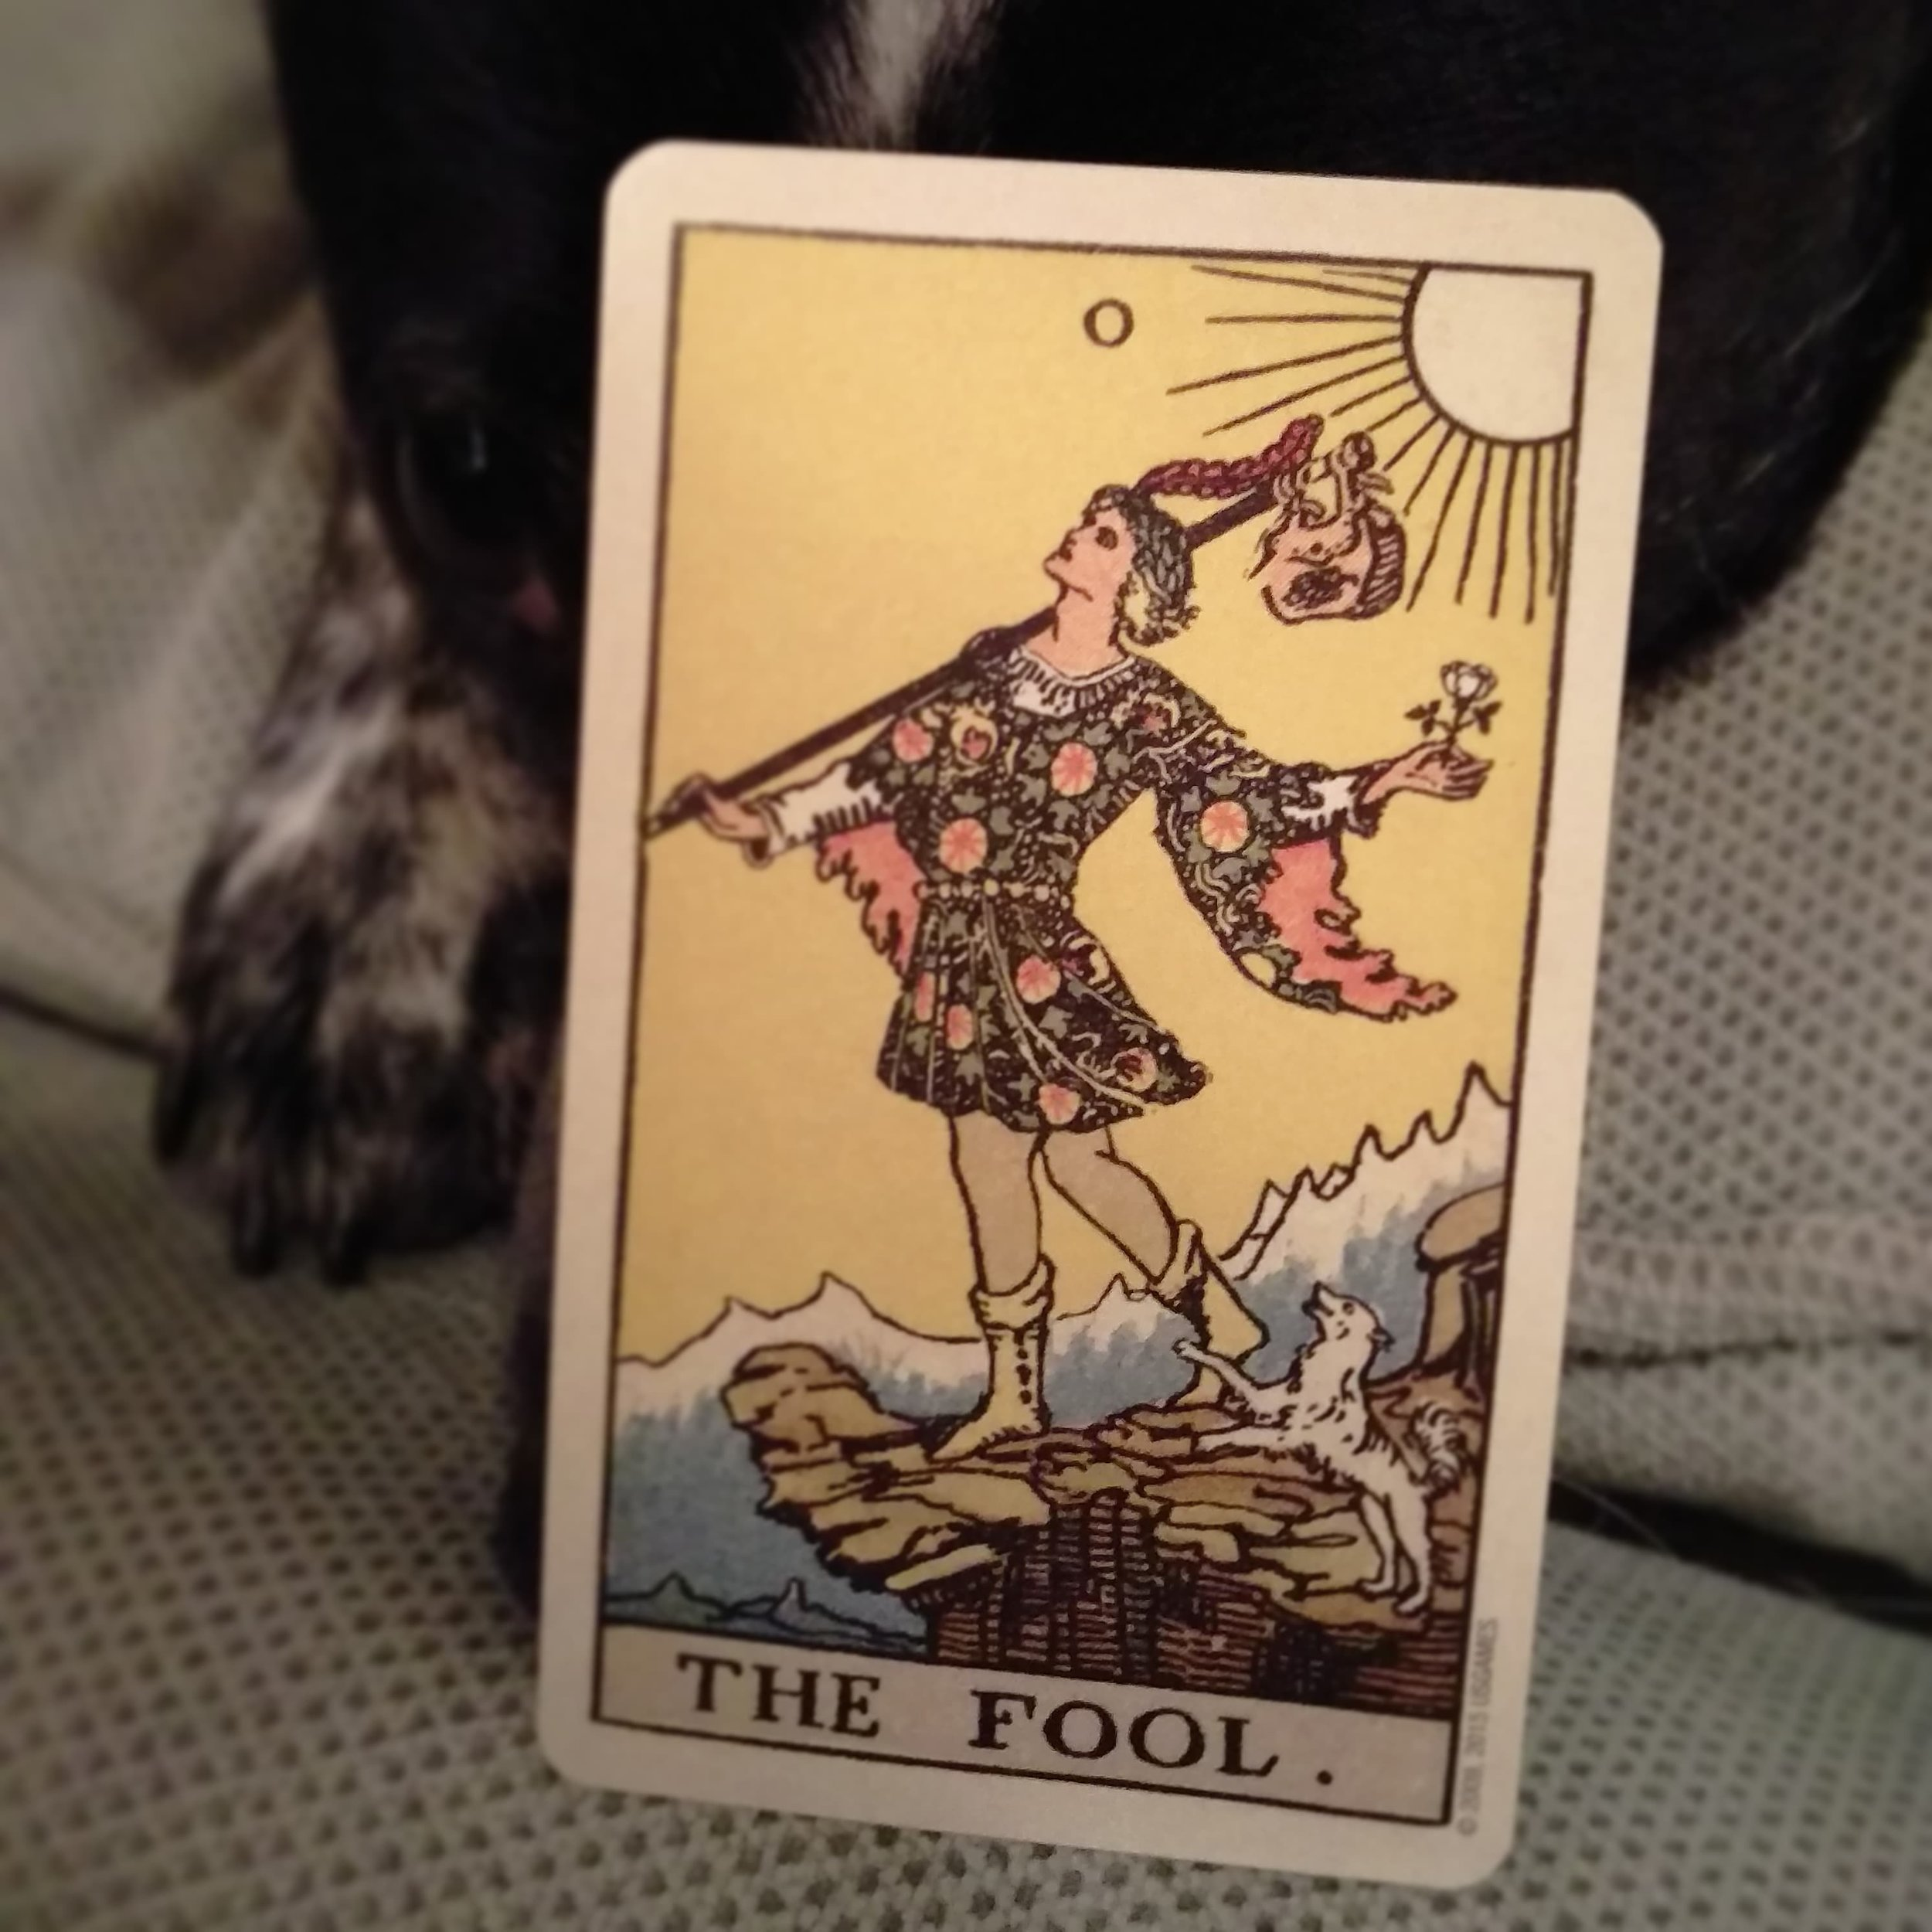 The Fool, photo credit E. Tempesta